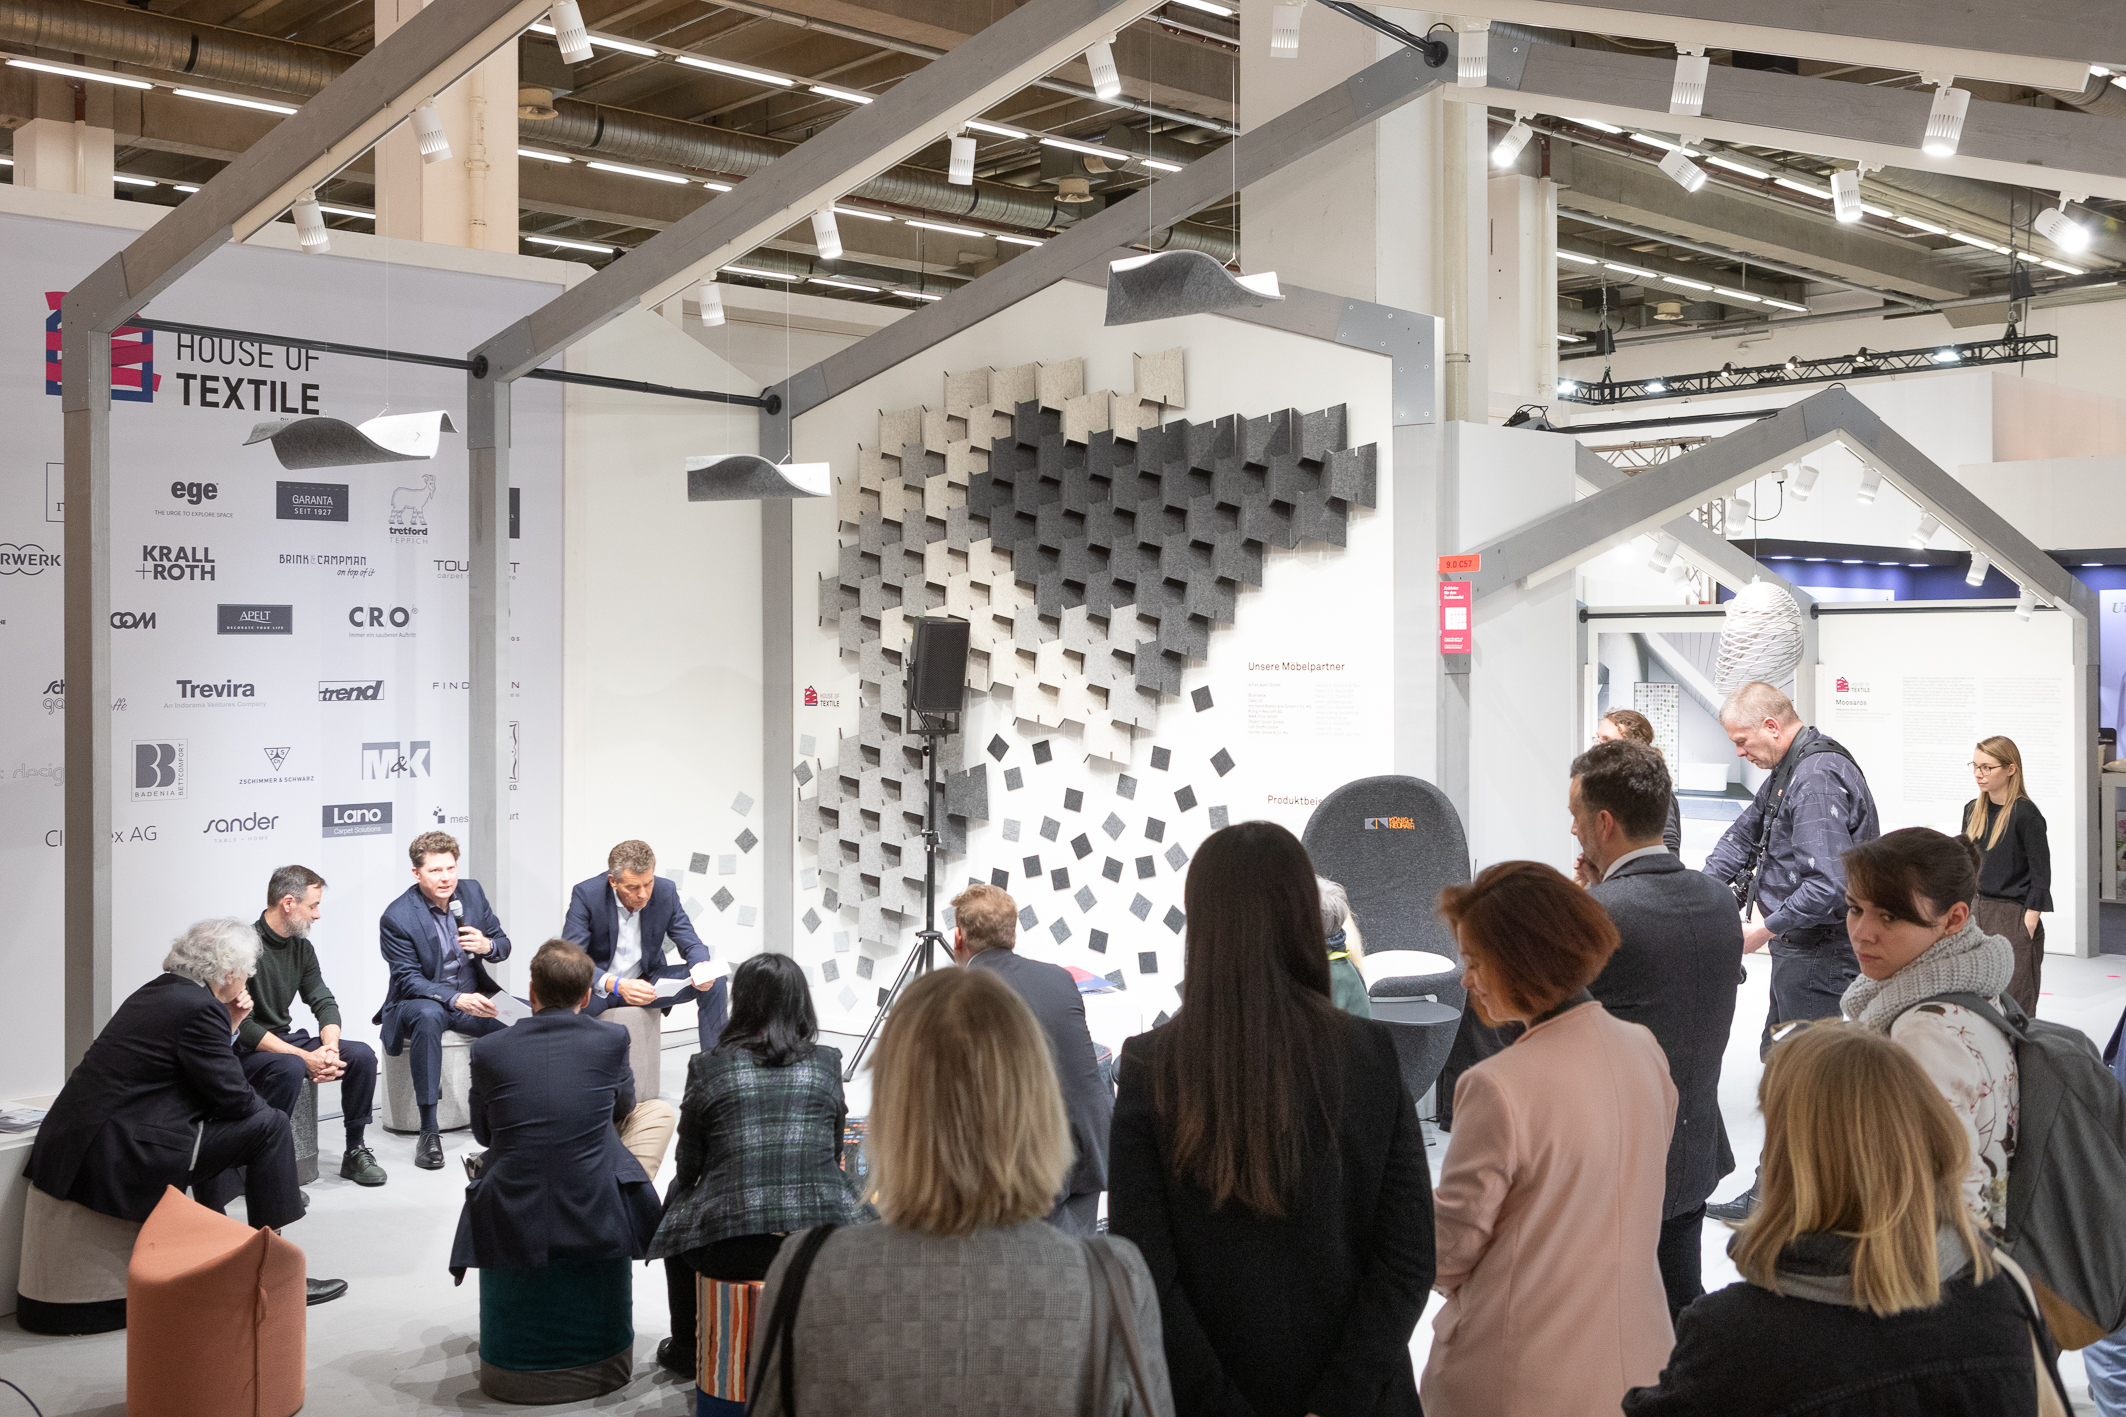 Press conference House of Textile / Carpet by Heimtex